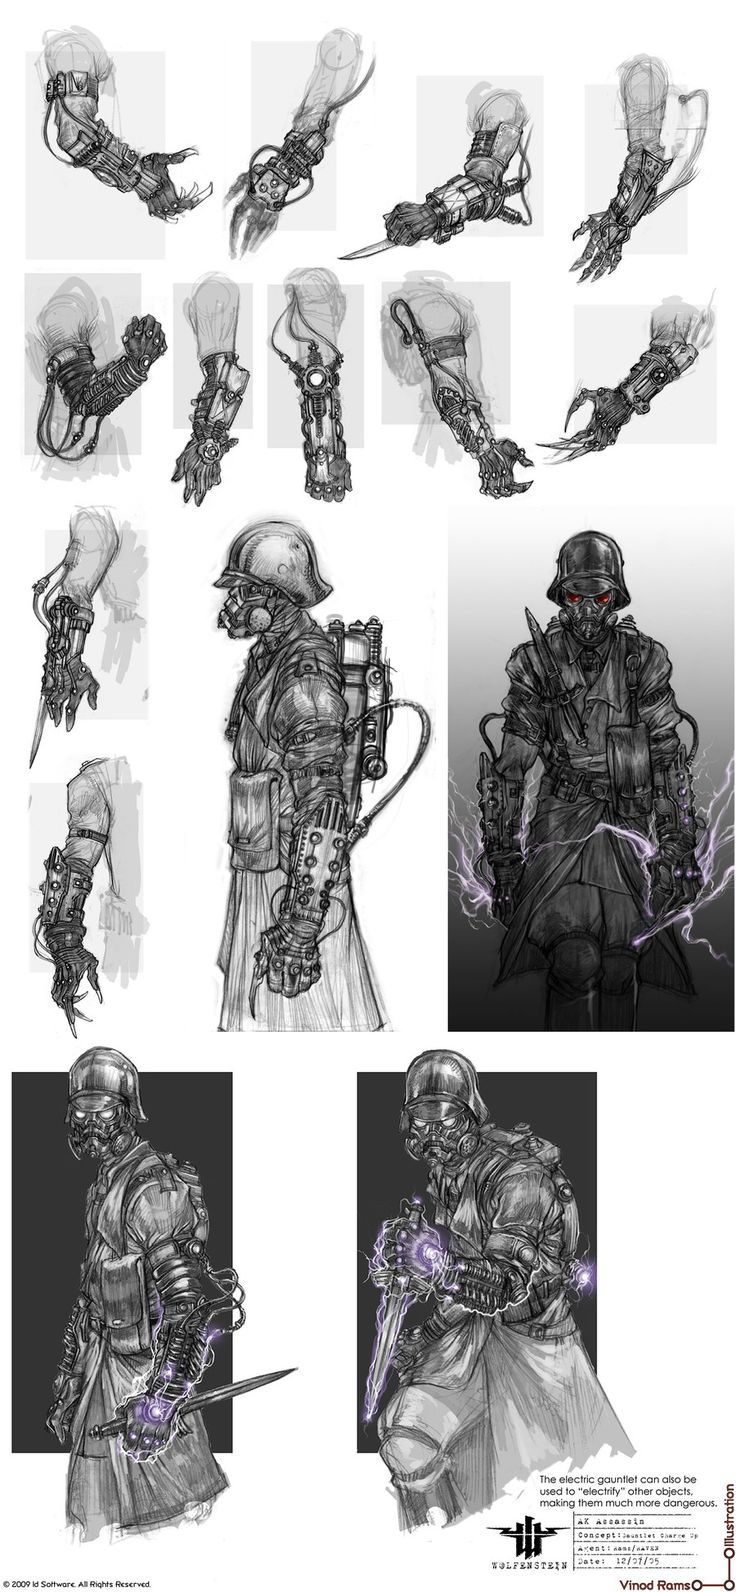 vinodrams - Wolfenstein>Misc. Concepts Love these arm ideas